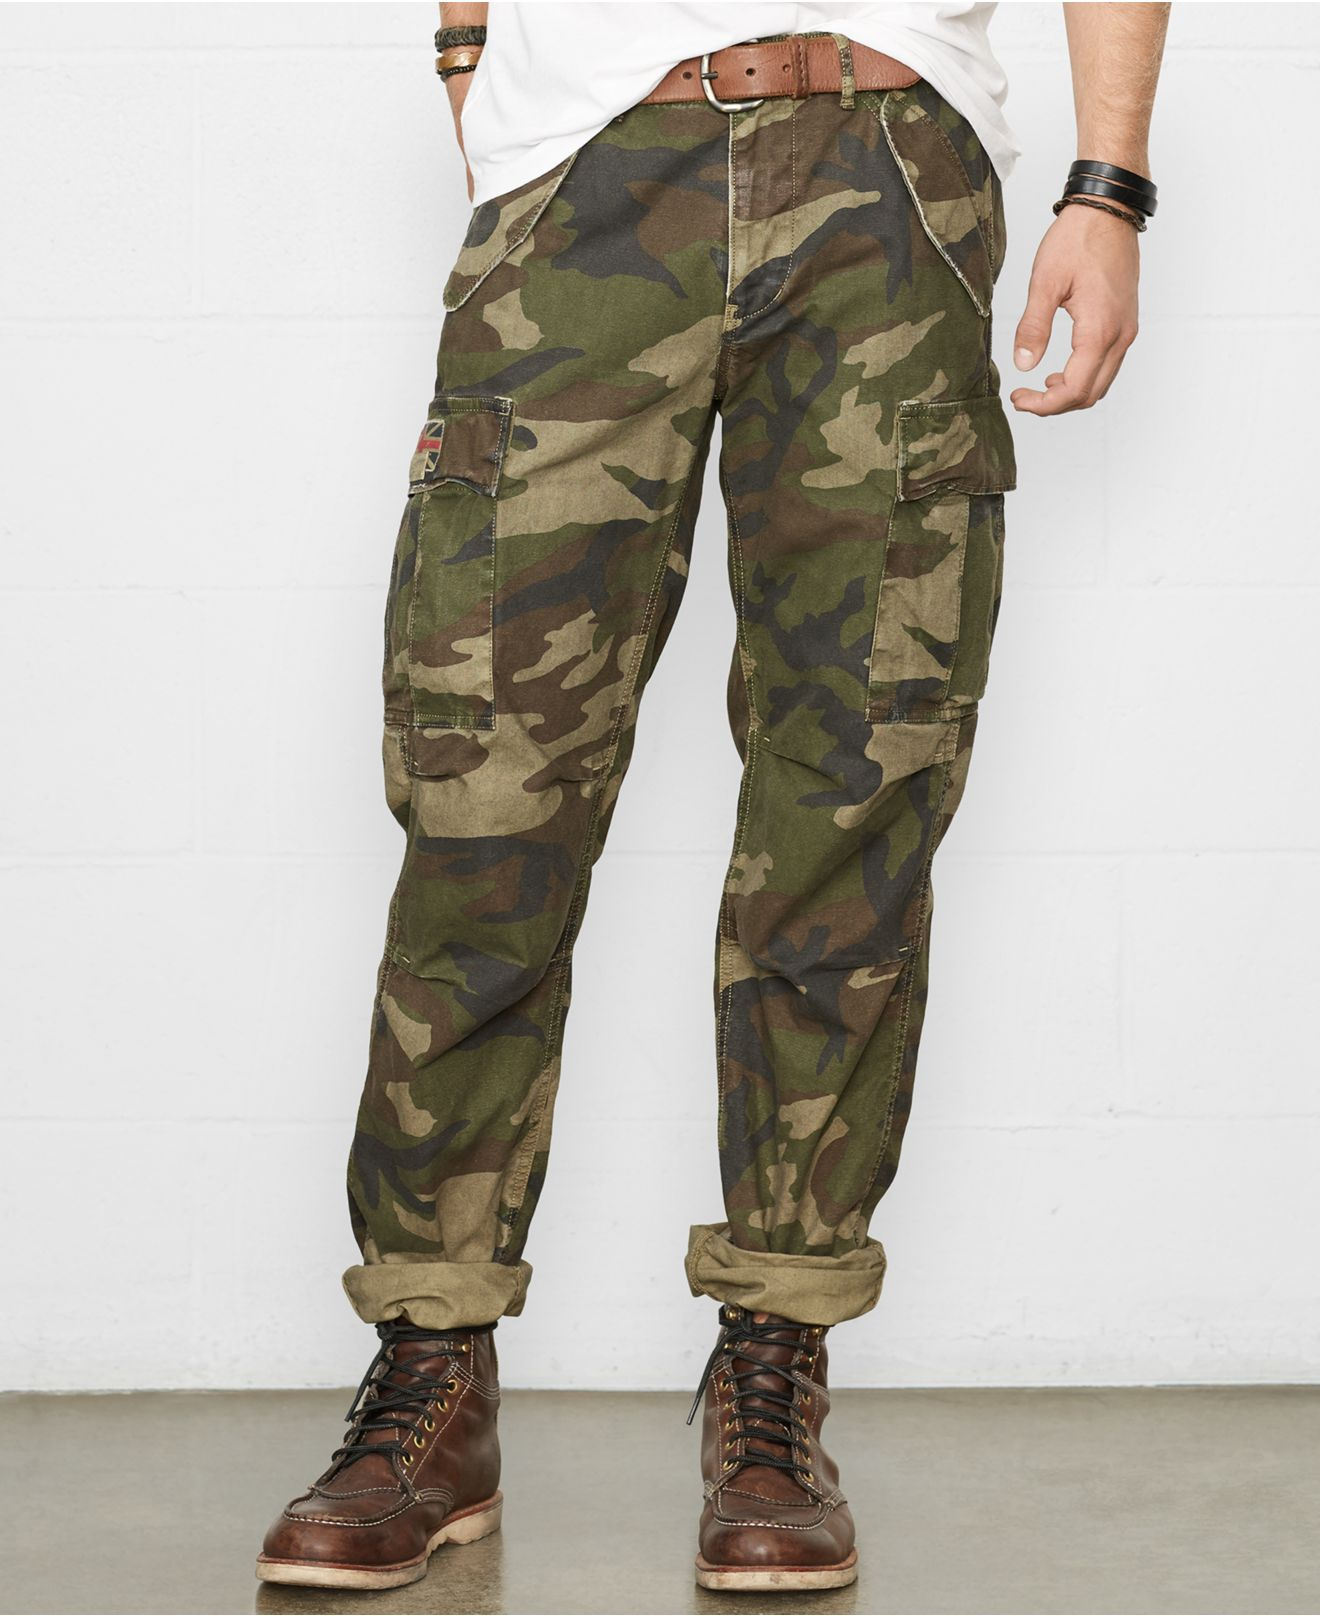 Shop for camouflage cargo pants online at Target. Free shipping on purchases over $35 and save 5% every day with your Target REDcard.